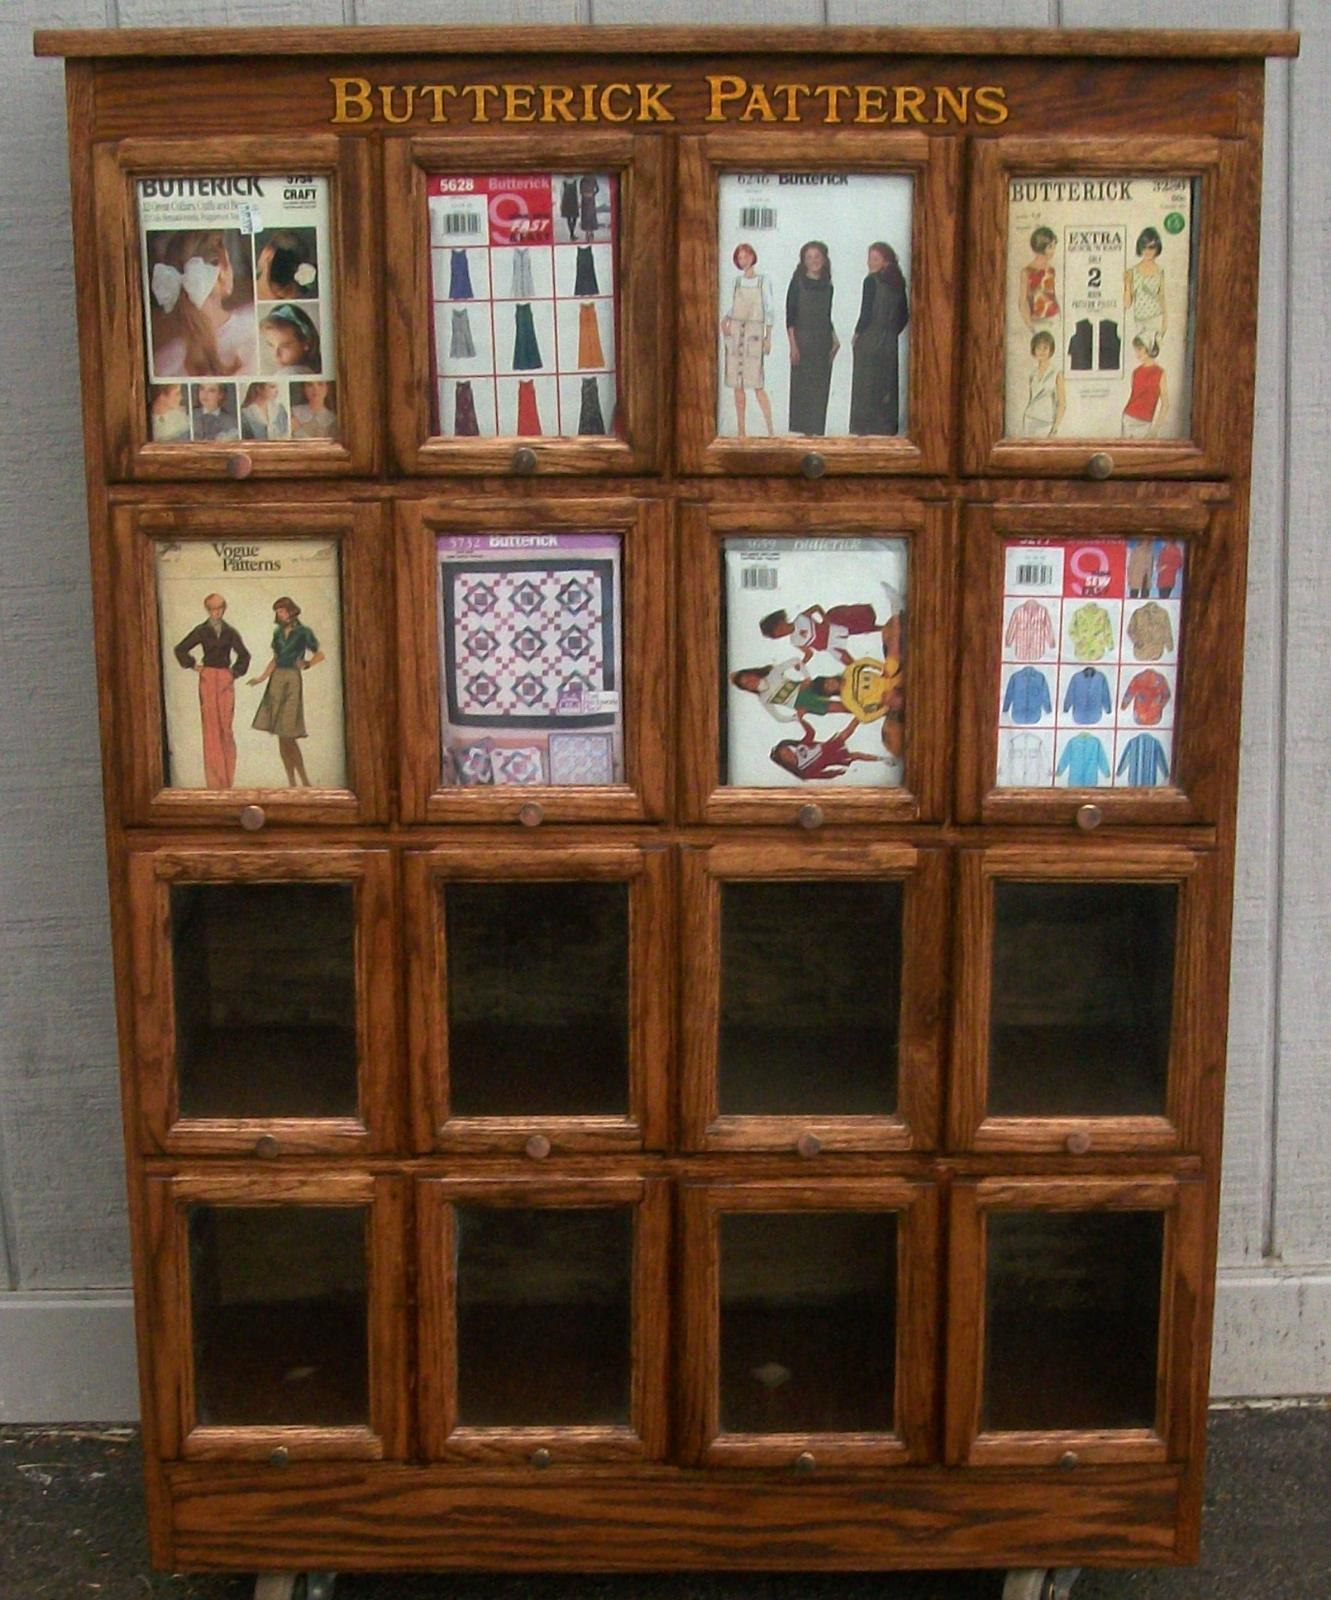 Rare Paragon Garter Store Display Case, Oak Butterick Pattern Cabinet - Country Store Display Cases, BRASS LANTERN ANTIQUES